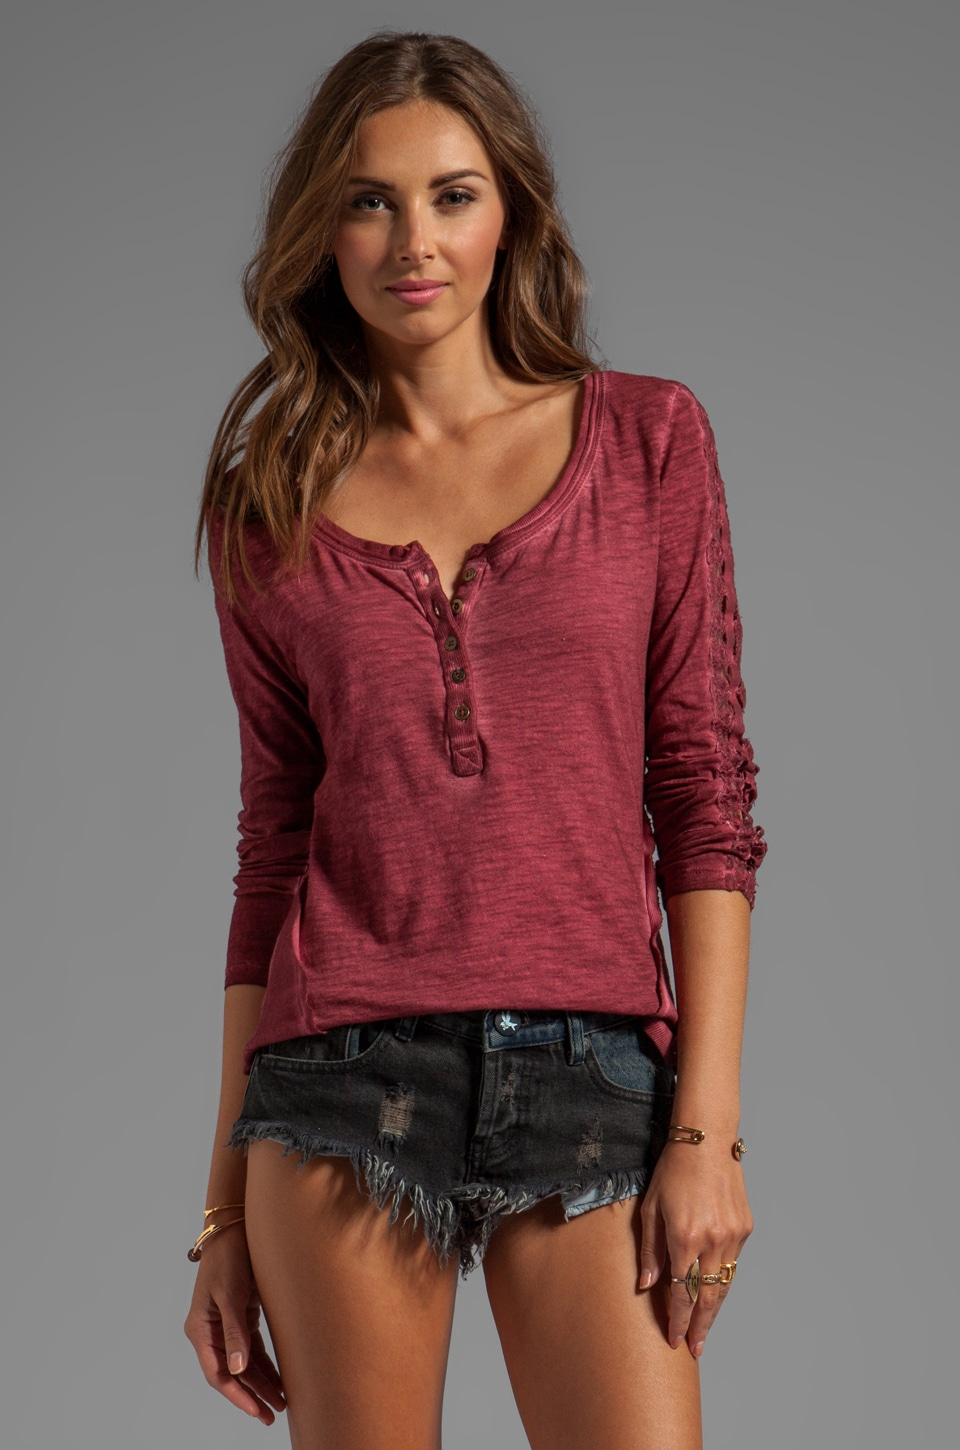 Free People Shell Stitch Lace Top in Deep Red